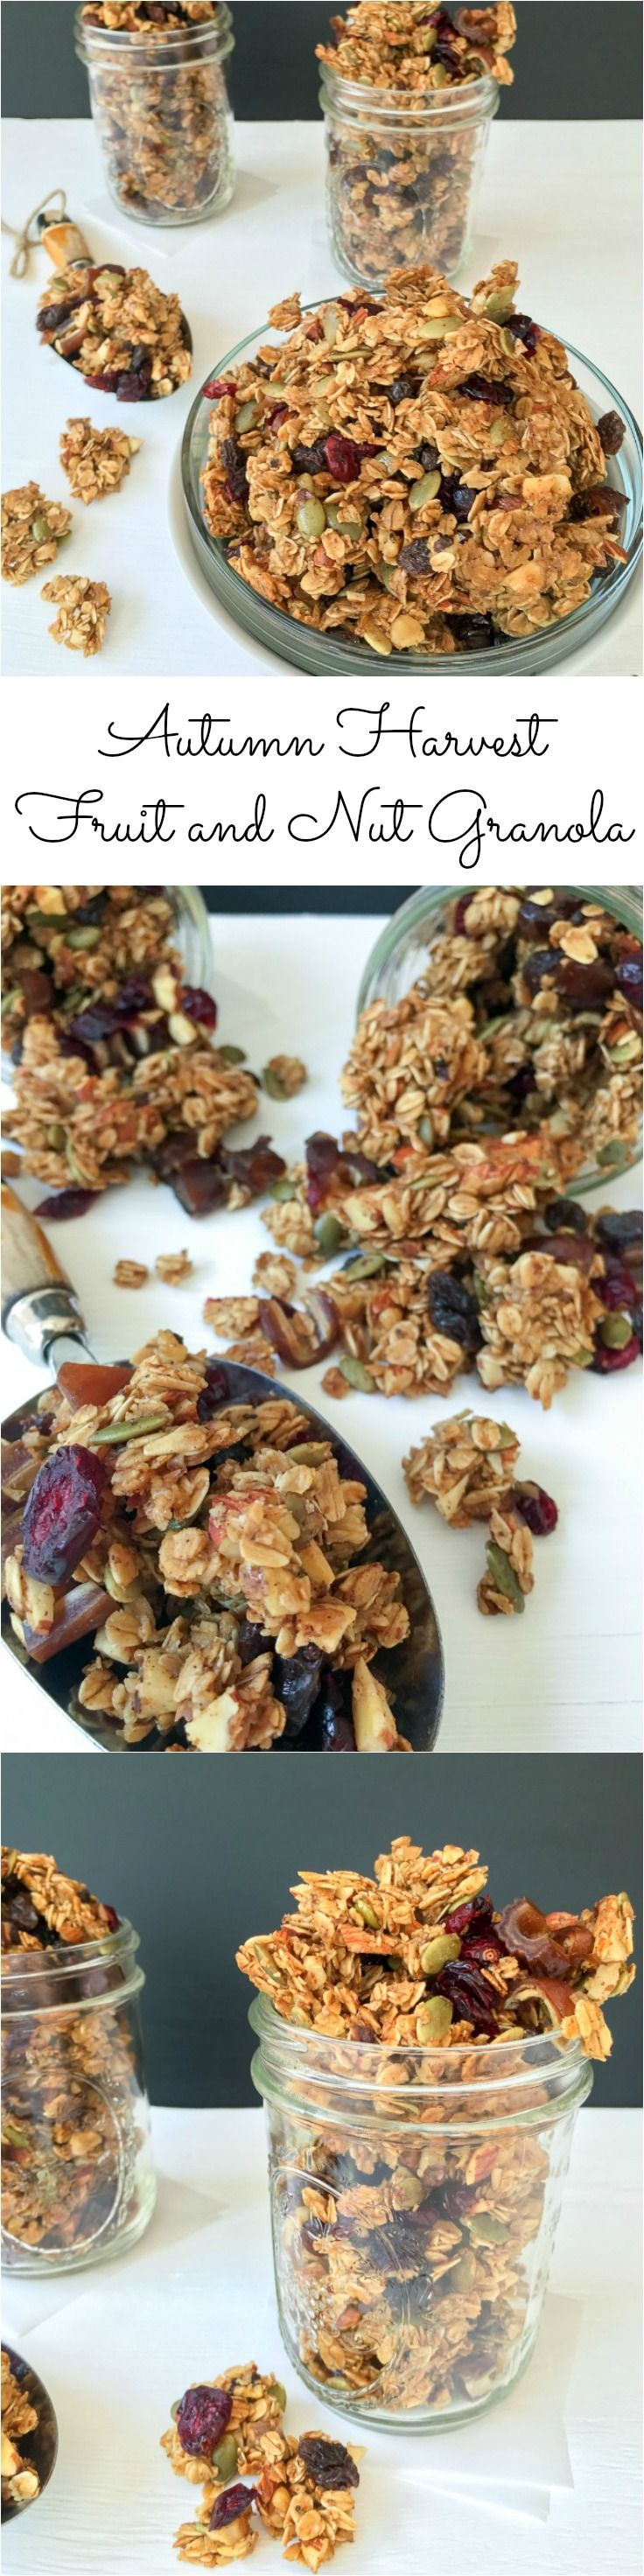 This homemade granola recipe is loaded with cinnamon, warm vanilla, pumpkin seeds and tart cranberries and is naturally…